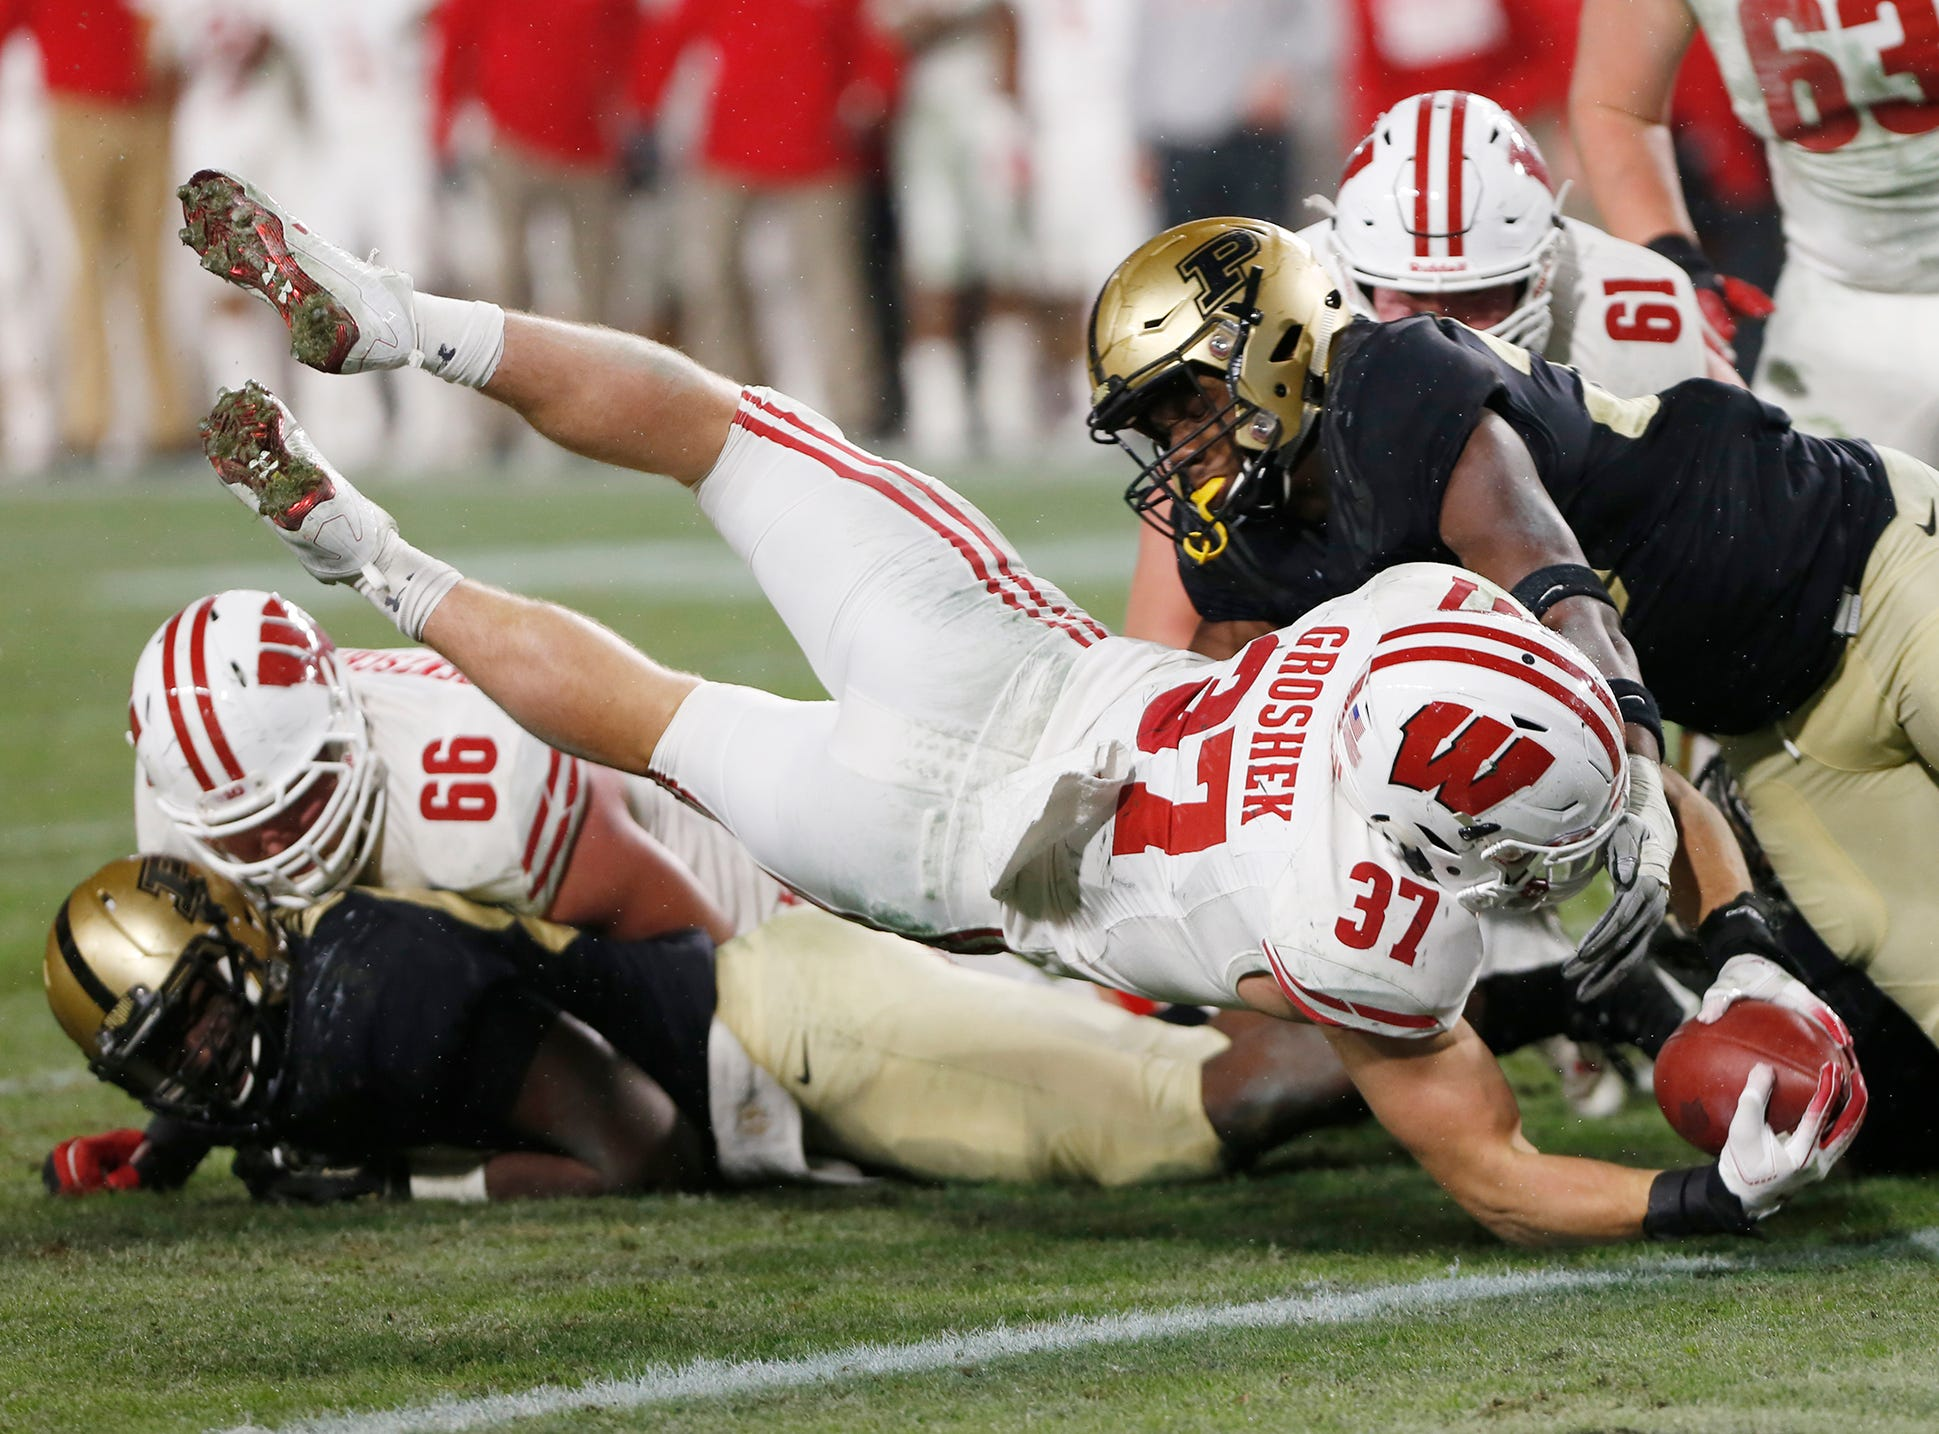 Garrett Groshek of Wisconsin dives into the end zone for a touchdown in the second overtime period against Purdue Saturday, November 17, 2018, at Ross-Ade Stadium. Purdue fell to Wisconsin 47-44 3OT.